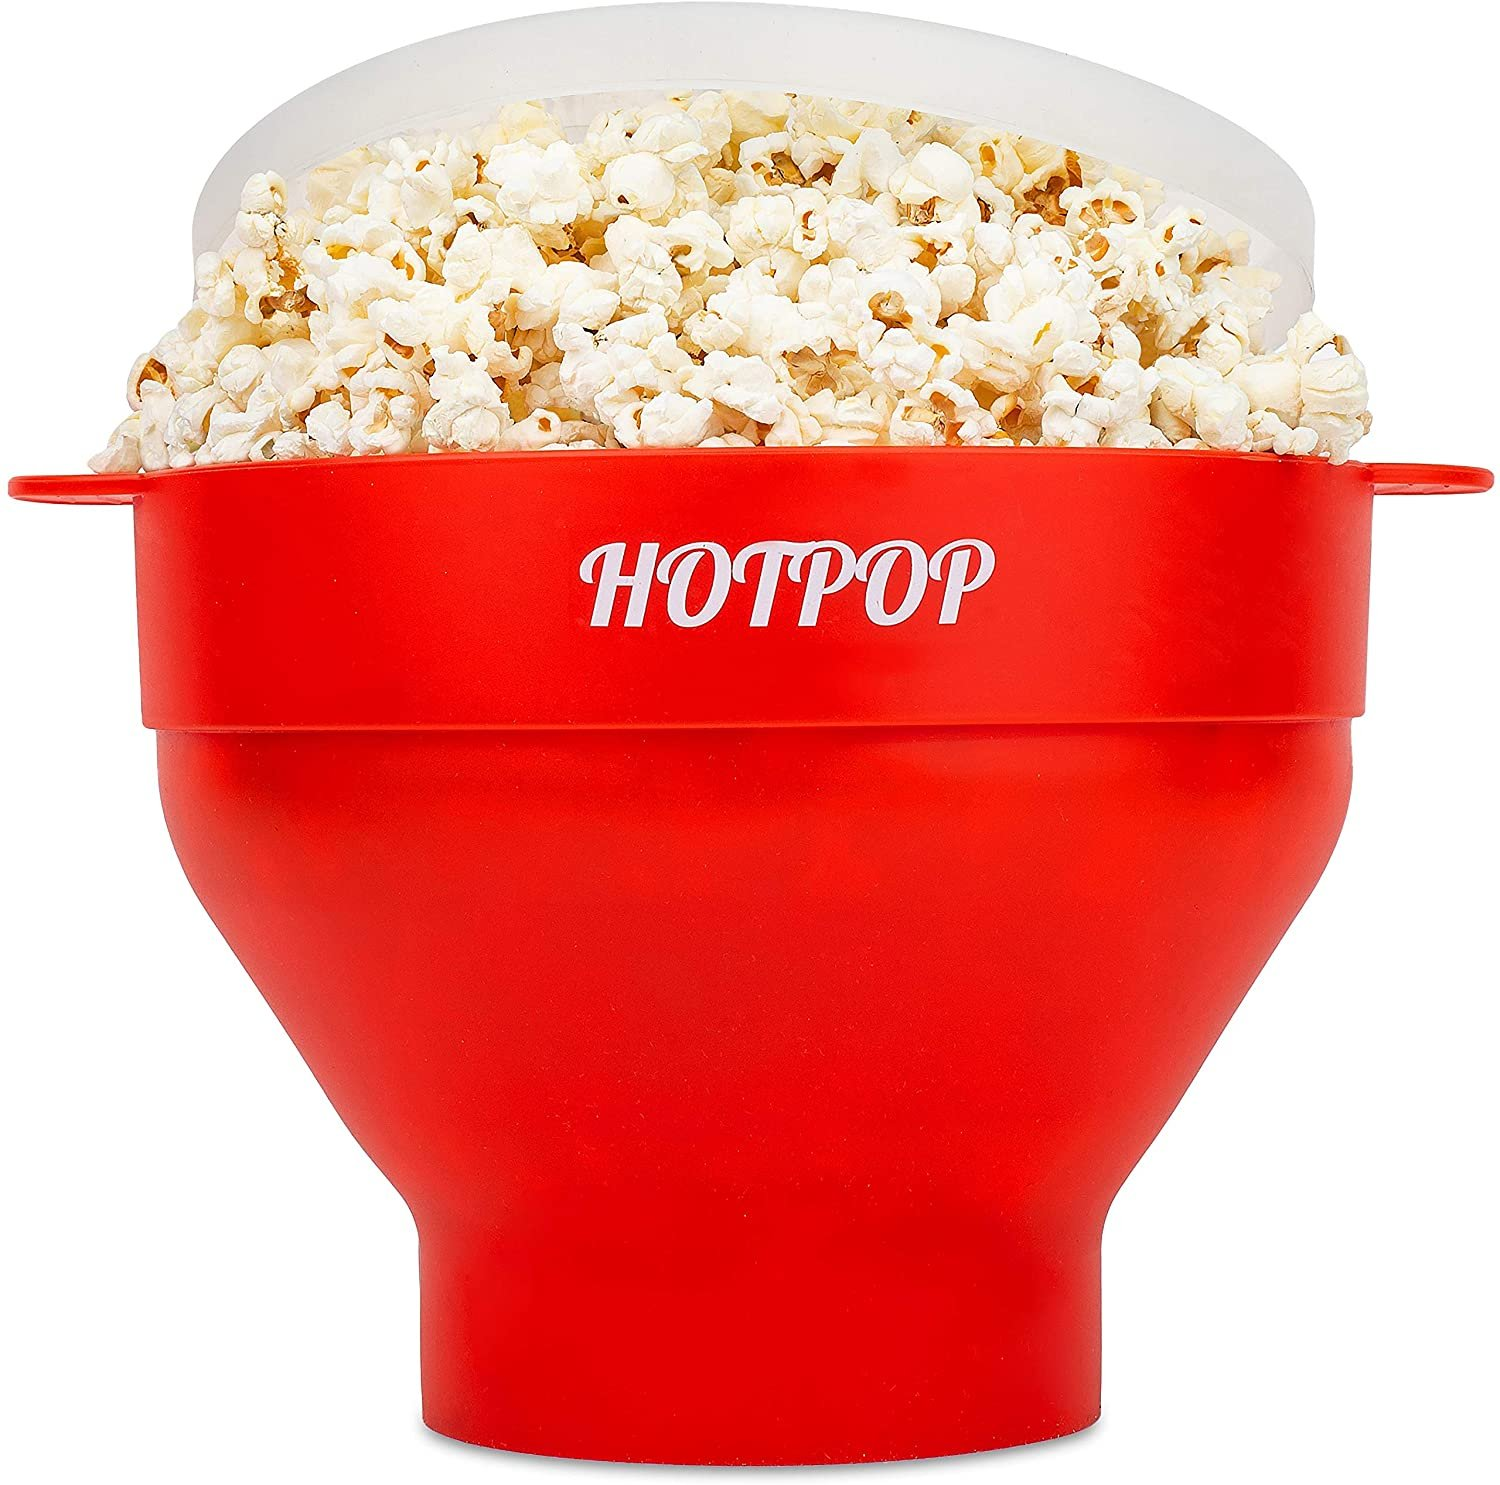 The Original Hotpop Microwave Popcorn Popper, Silicone Popcorn Maker, Collapsible Bowl!